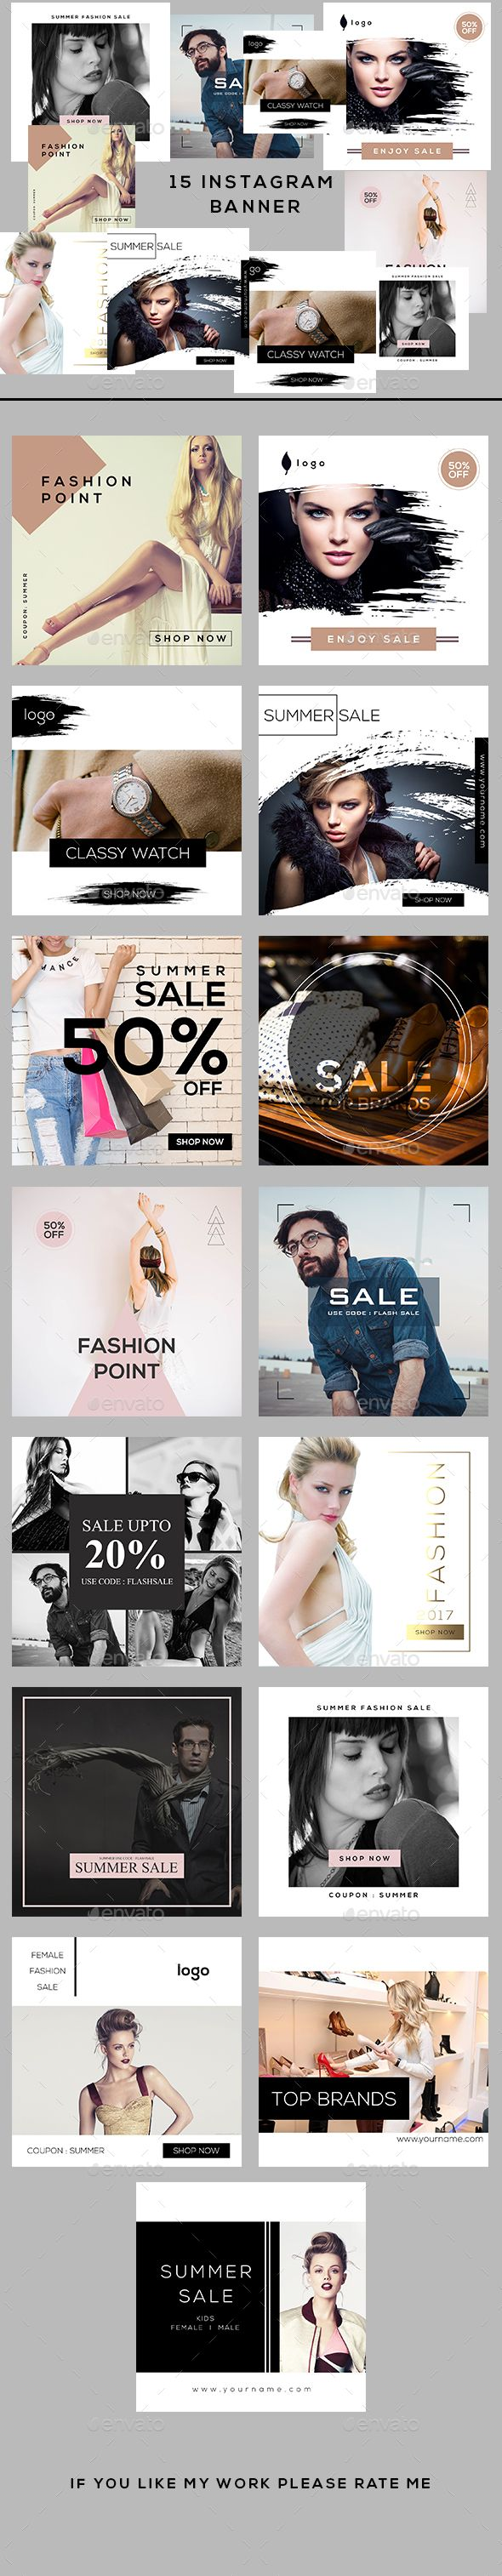 Fashion Instagram Banners — Photoshop PSD #business #deal • Download ➝ https://graphicriver.net/item/fashion-instagram-banners/20093145?ref=pxcr